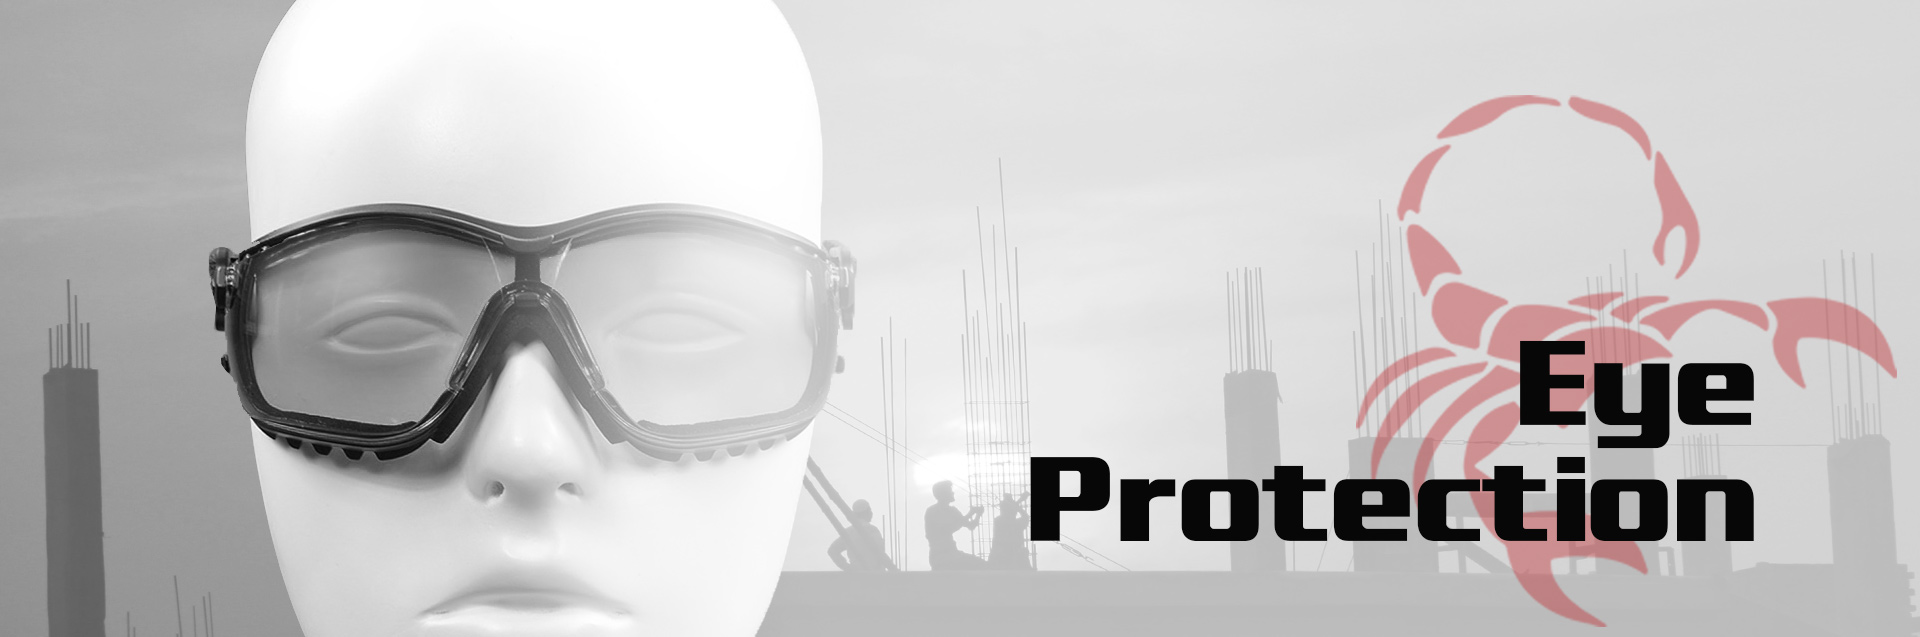 Eye Protection Banner